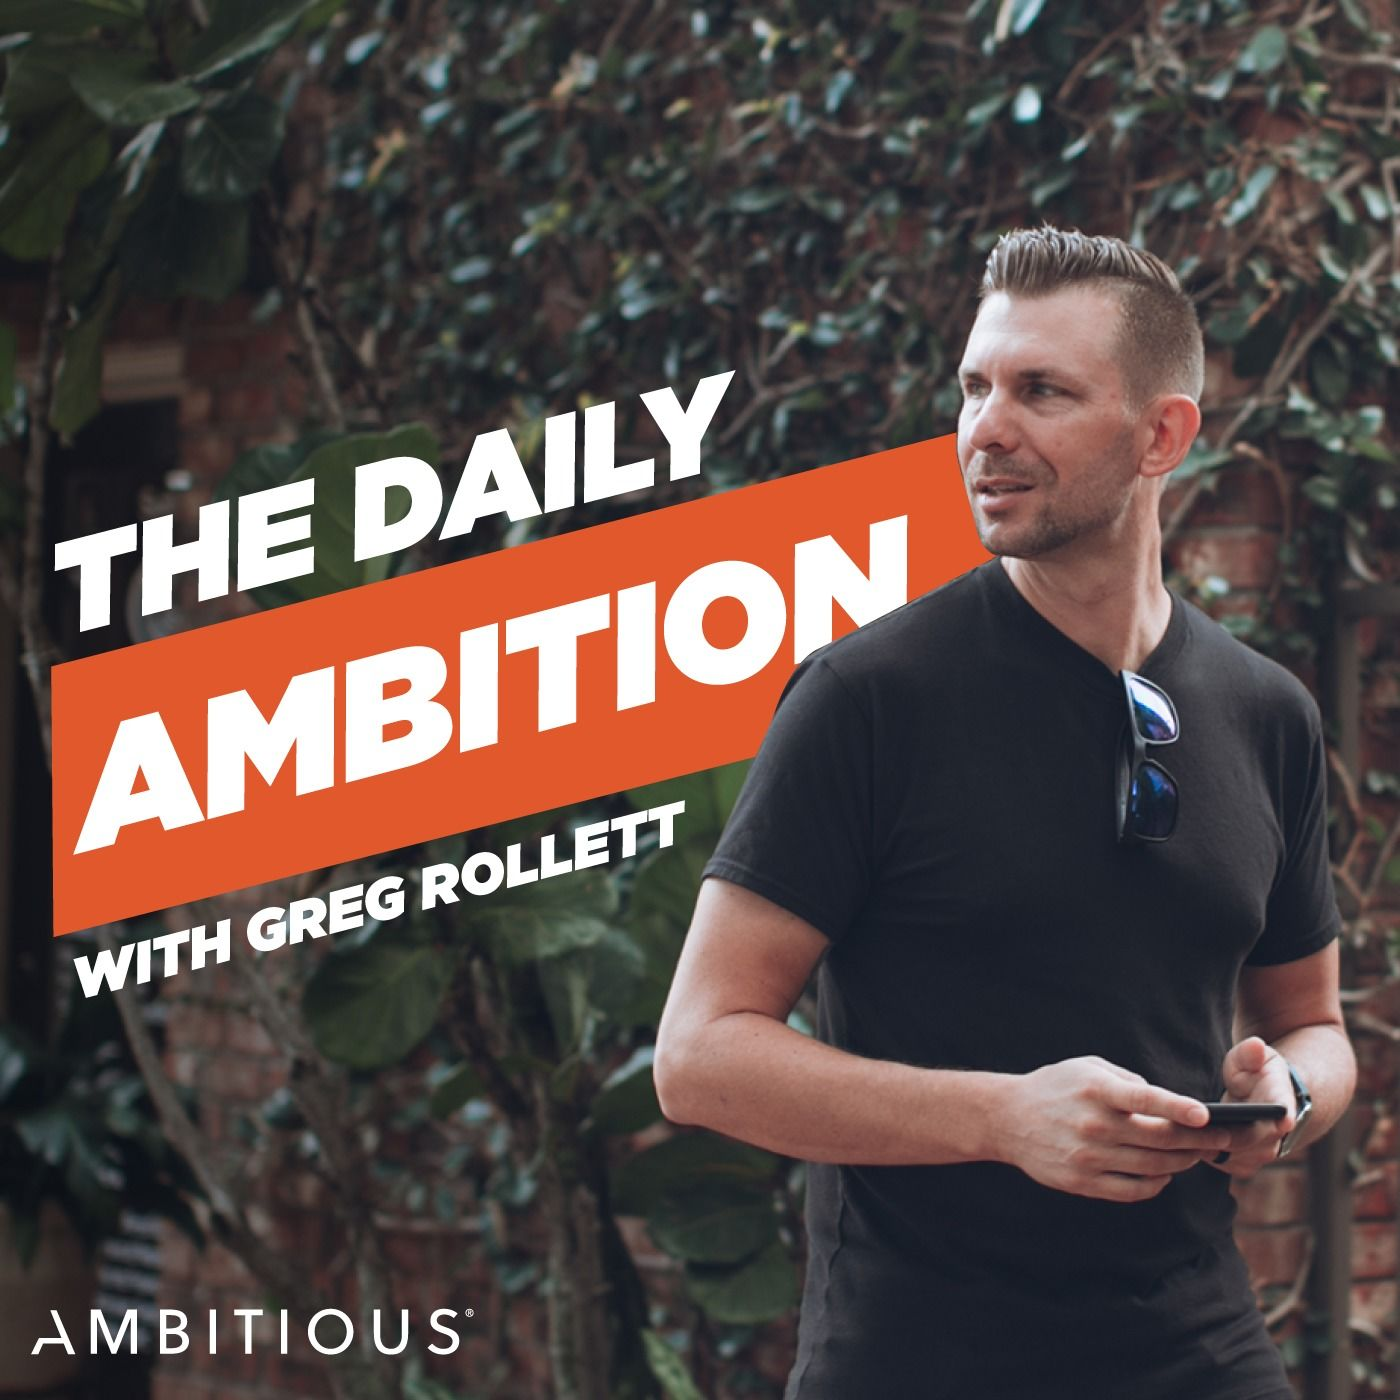 The Daily Ambition with Greg Rollett